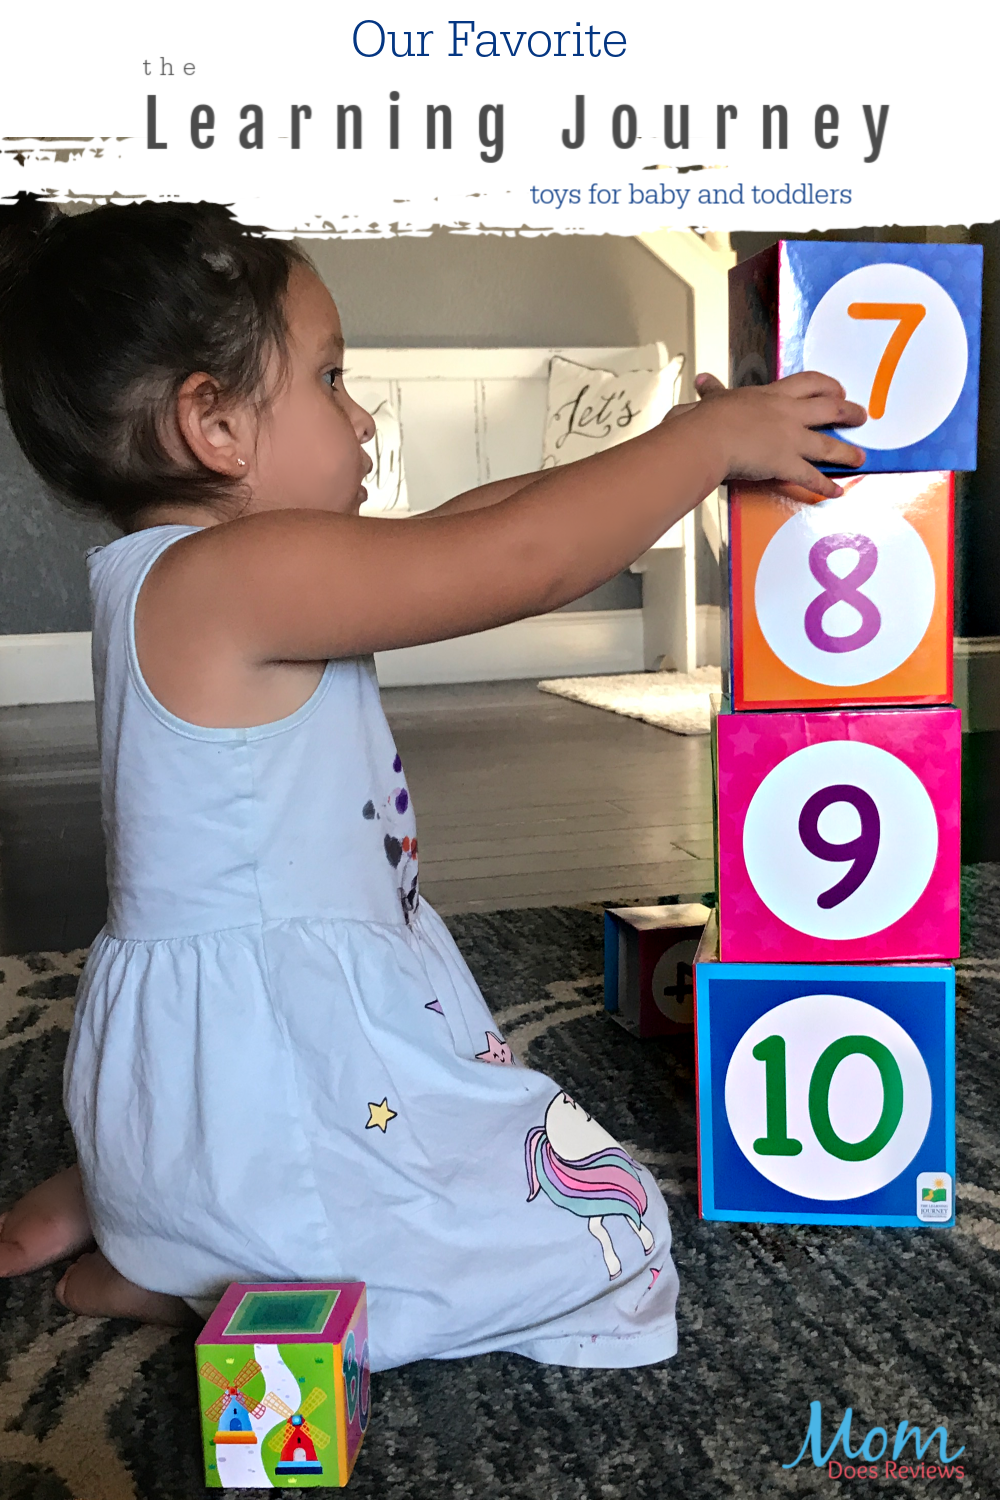 Our Favorite The Learning Journey International Toys